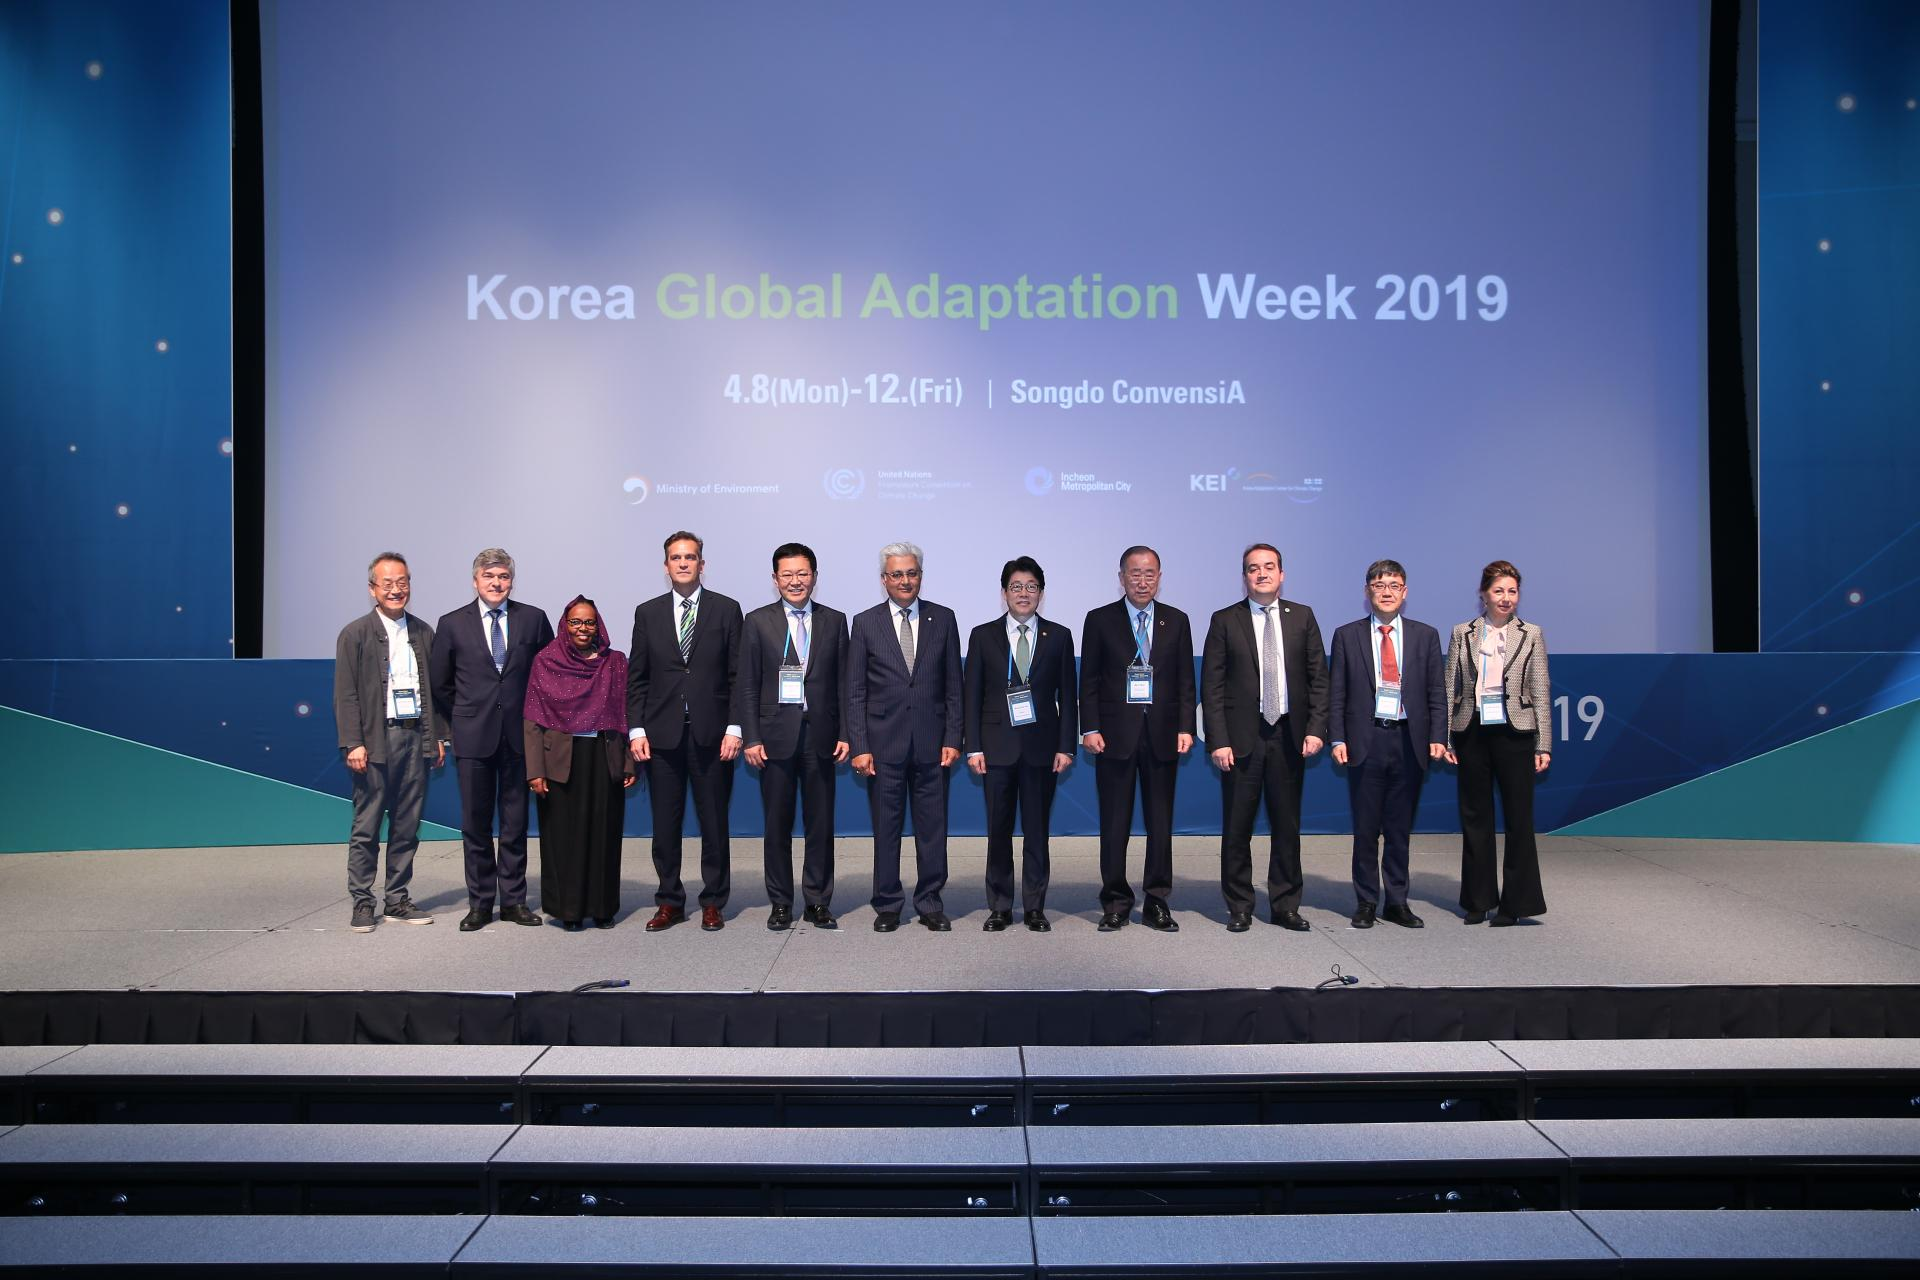 group Korea Global Adaptation Week